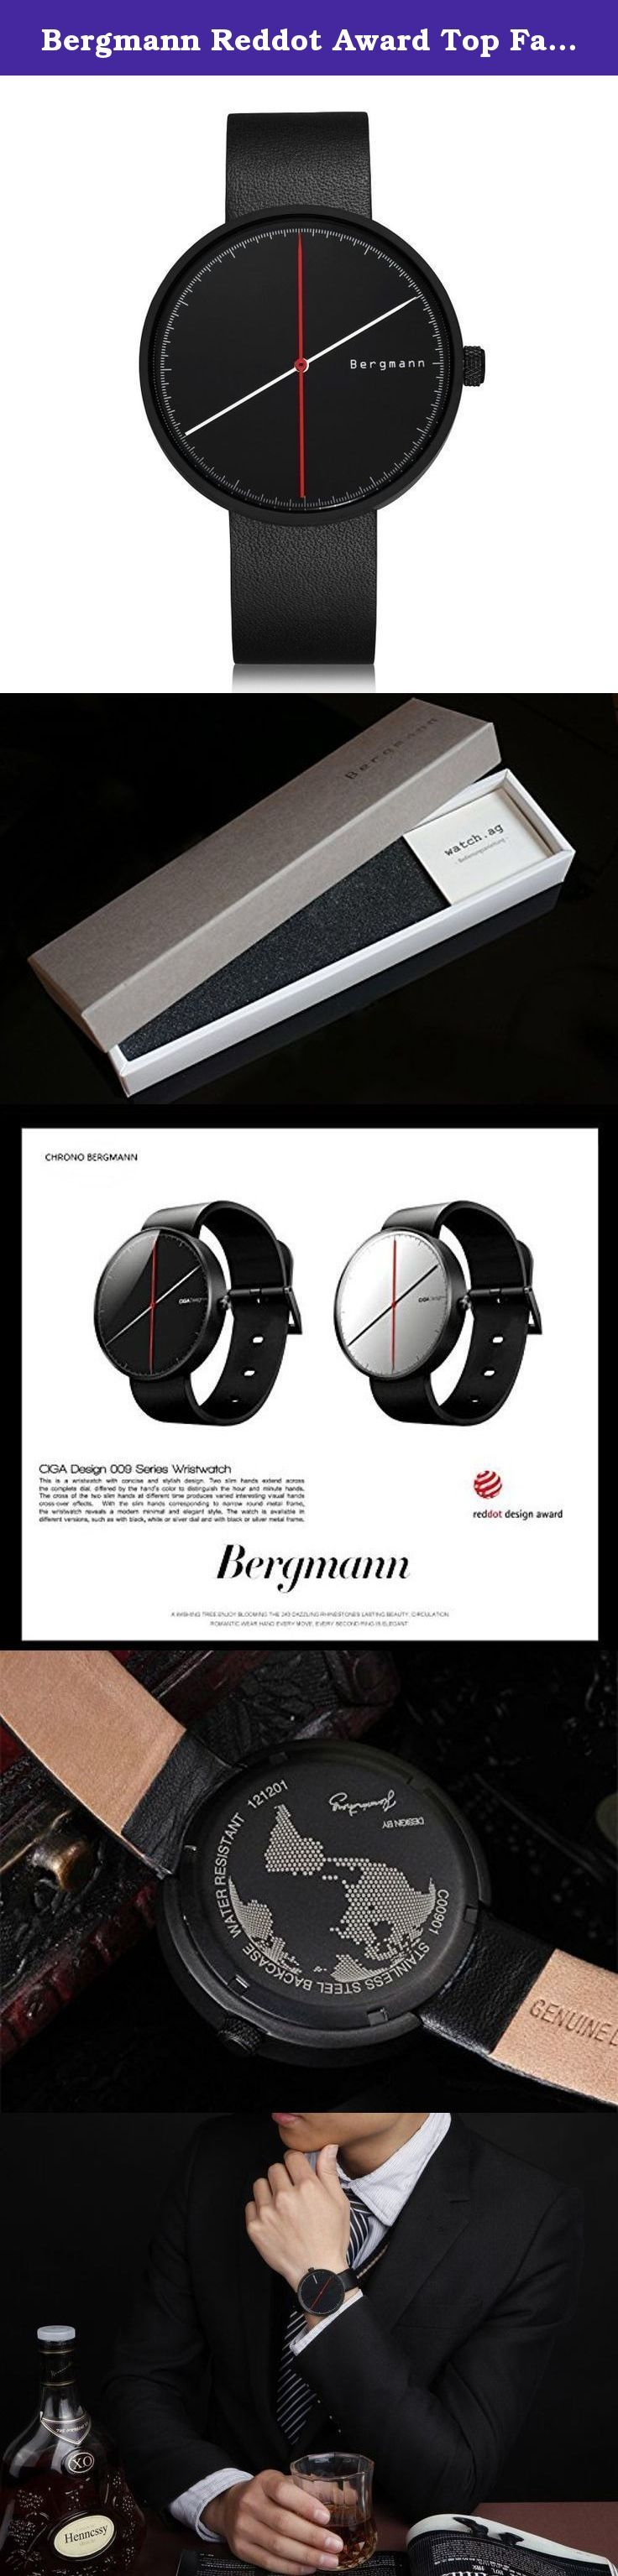 Bergmann Reddot Award Top Fashion Men' Watches Casual Designer Black Dial Watch Leather Quartz Cool Gift. Bergmann is one of the hot selling watch brands in Germany. Started from 1933 in Schramberg, Bergmann was first well known with its vintage miner series of mechanical watch. In 1990s, Bergmann worked with Jens Richter, a european Bauhaus style designer, to engaged in Bergmann watches production. As time passed, now Bergmann had developed a number of Bauhaus style watches collections...